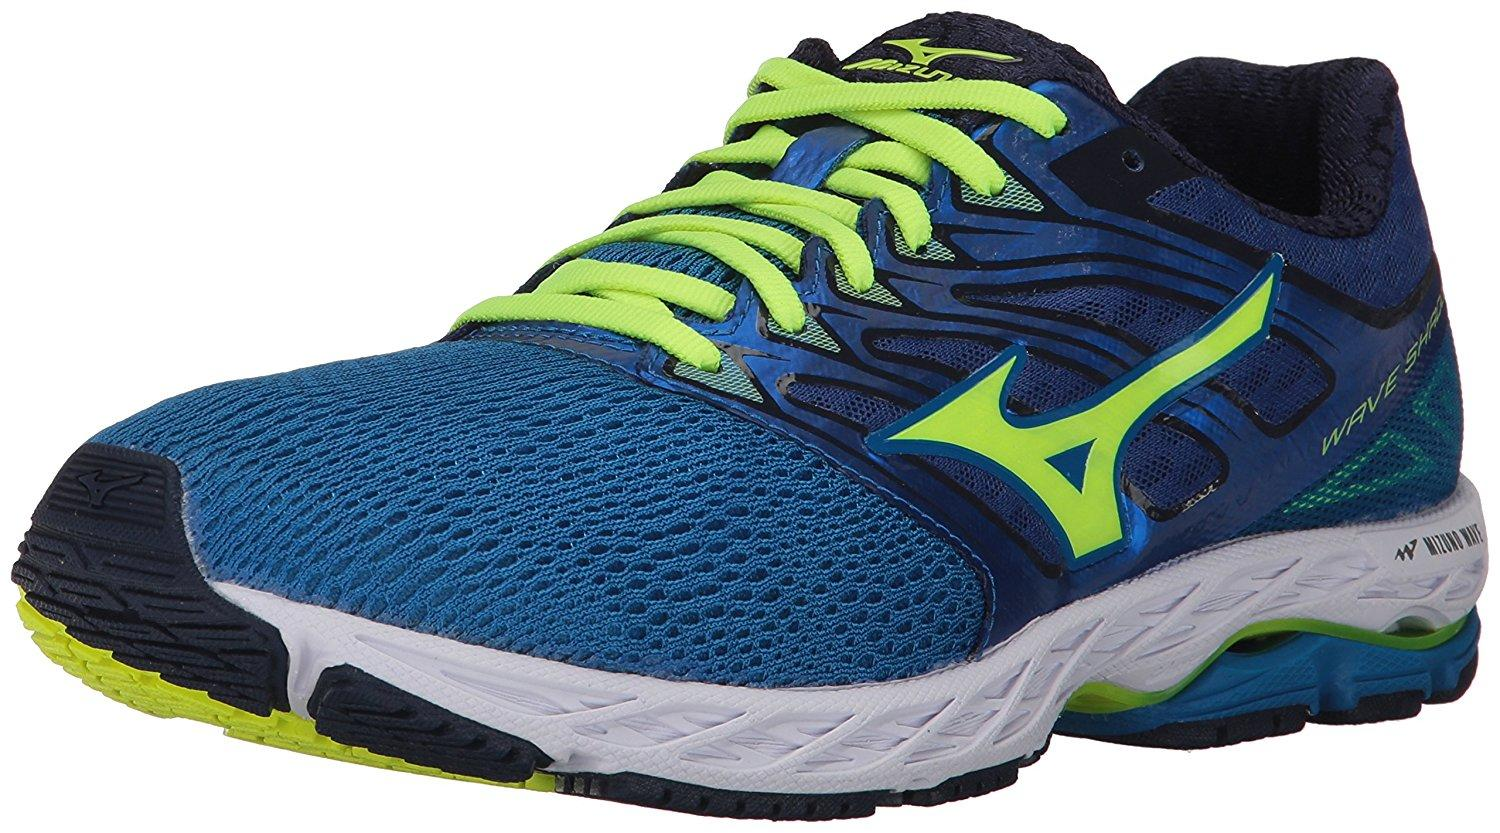 The Mizuno Wave Shadow features Dynamotion Fit technology